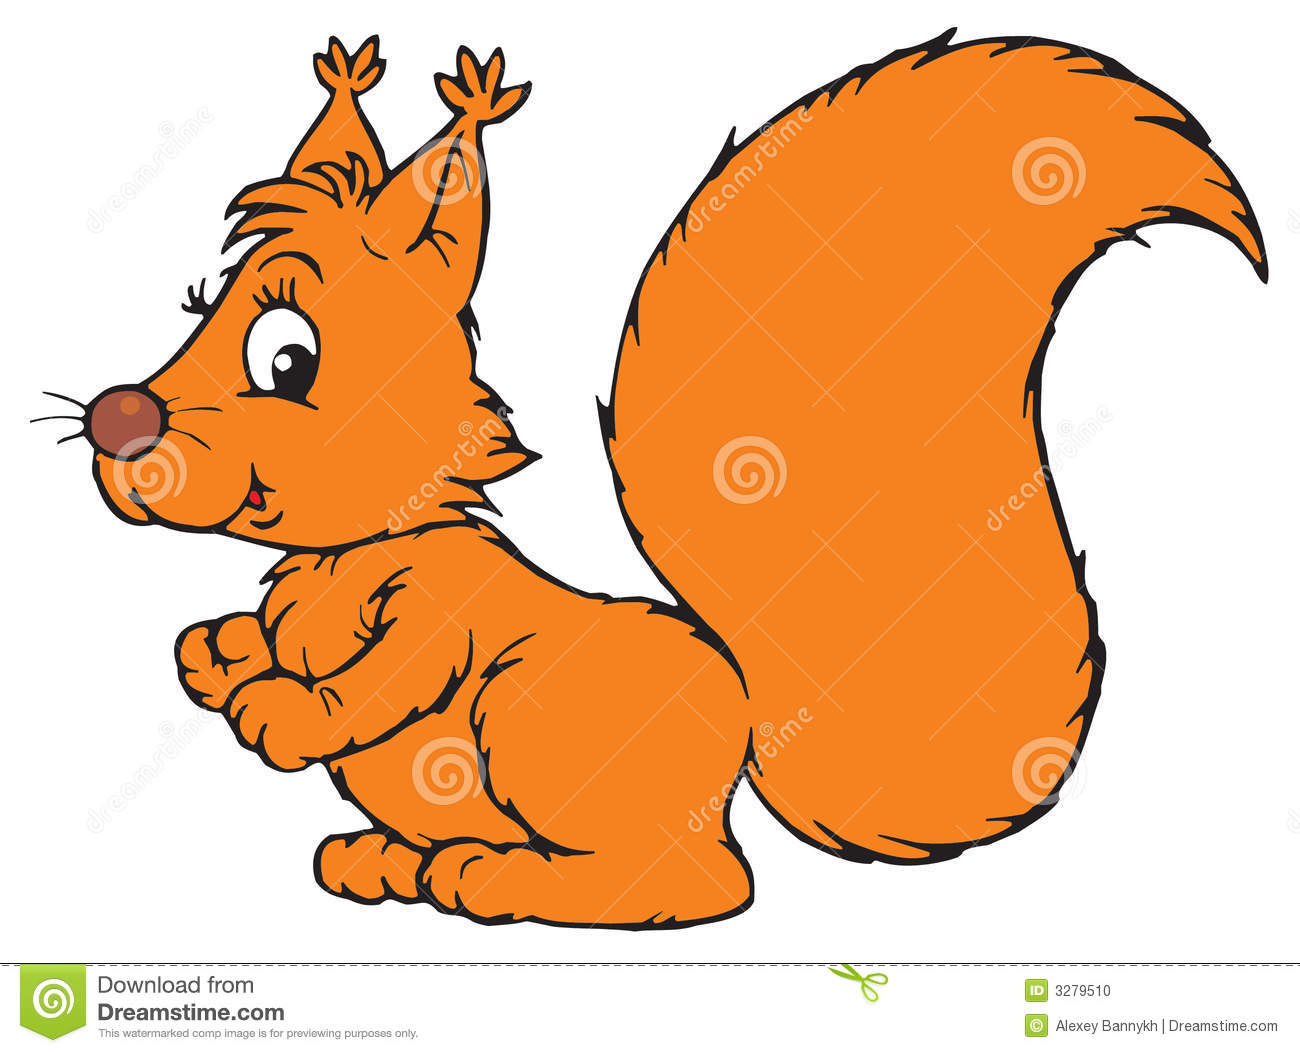 Blind squirrel clipart image library library Mole Clipart | Free download best Mole Clipart on ClipArtMag.com image library library